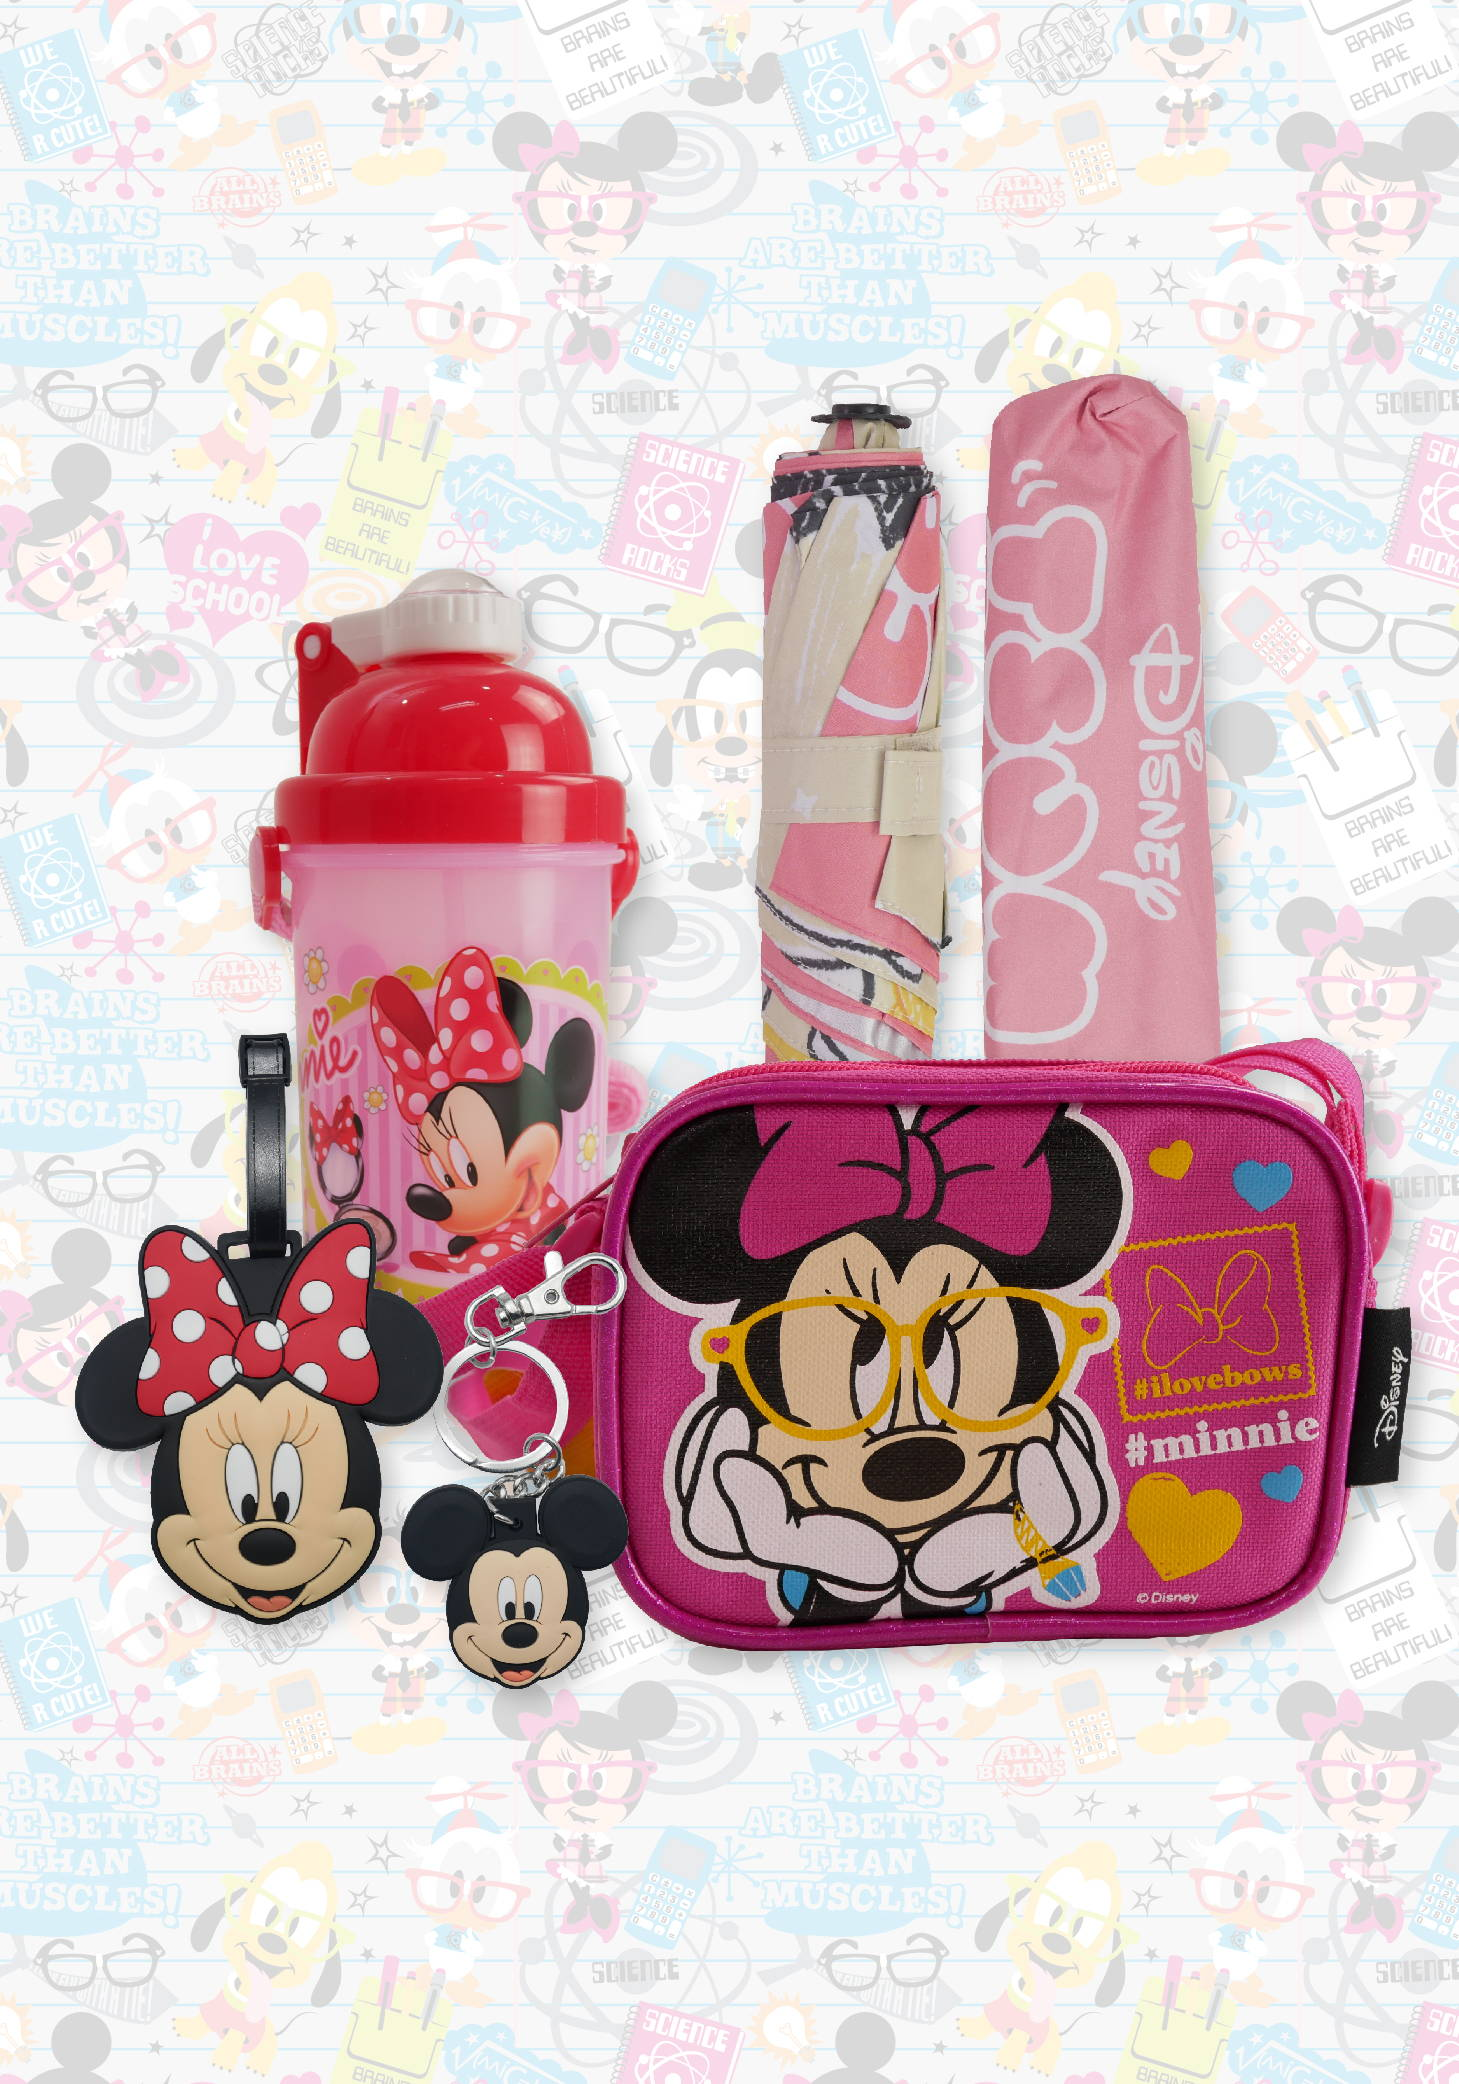 Mickey Mouse bags, water canteens, accessories